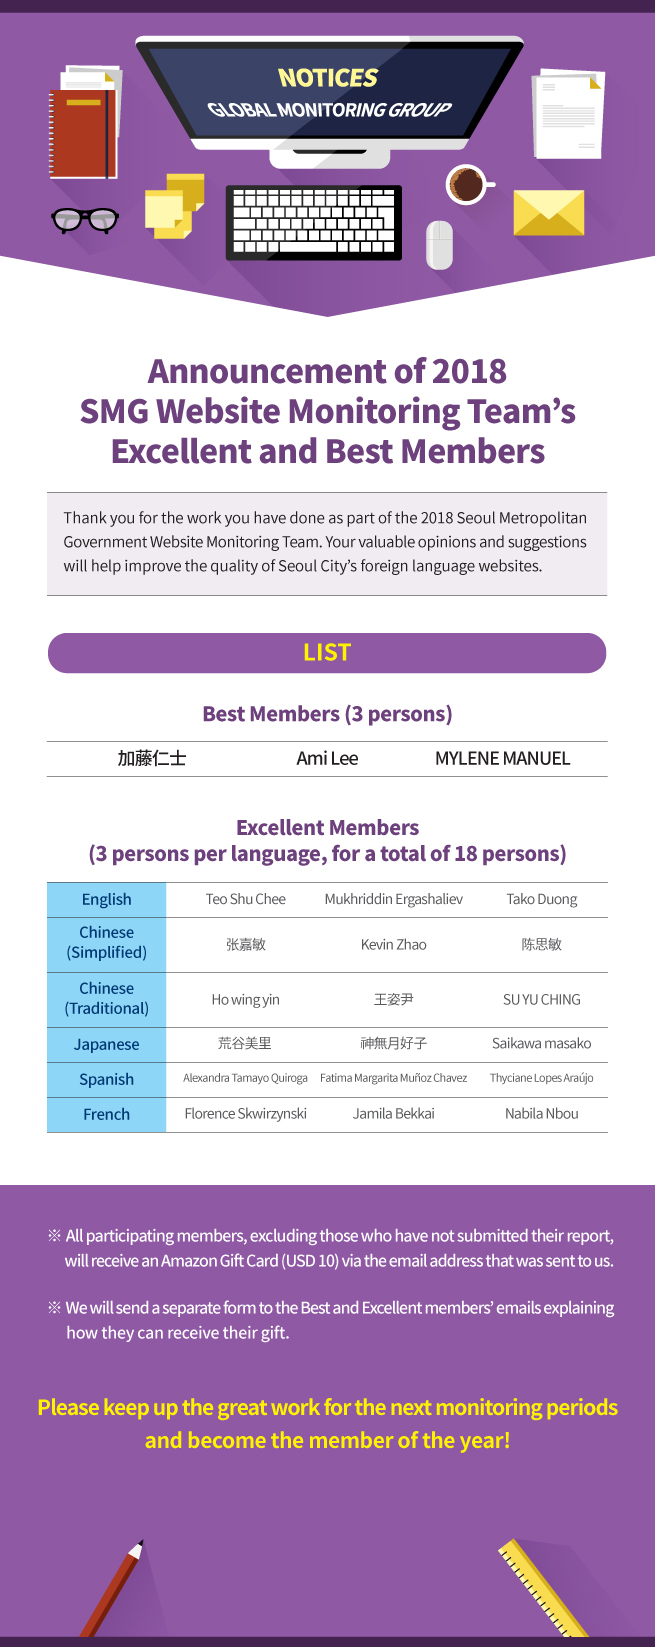 Announcement of 2018 SMG Website Monitoring Team's Excellent and Best Members Thank you for the work you have done as part of the 2018 Seoul Metropolitan  Government Website Monitoring Team. Your valuable opinions and suggestions  will help improve the quality of Seoul City's foreign language websites.